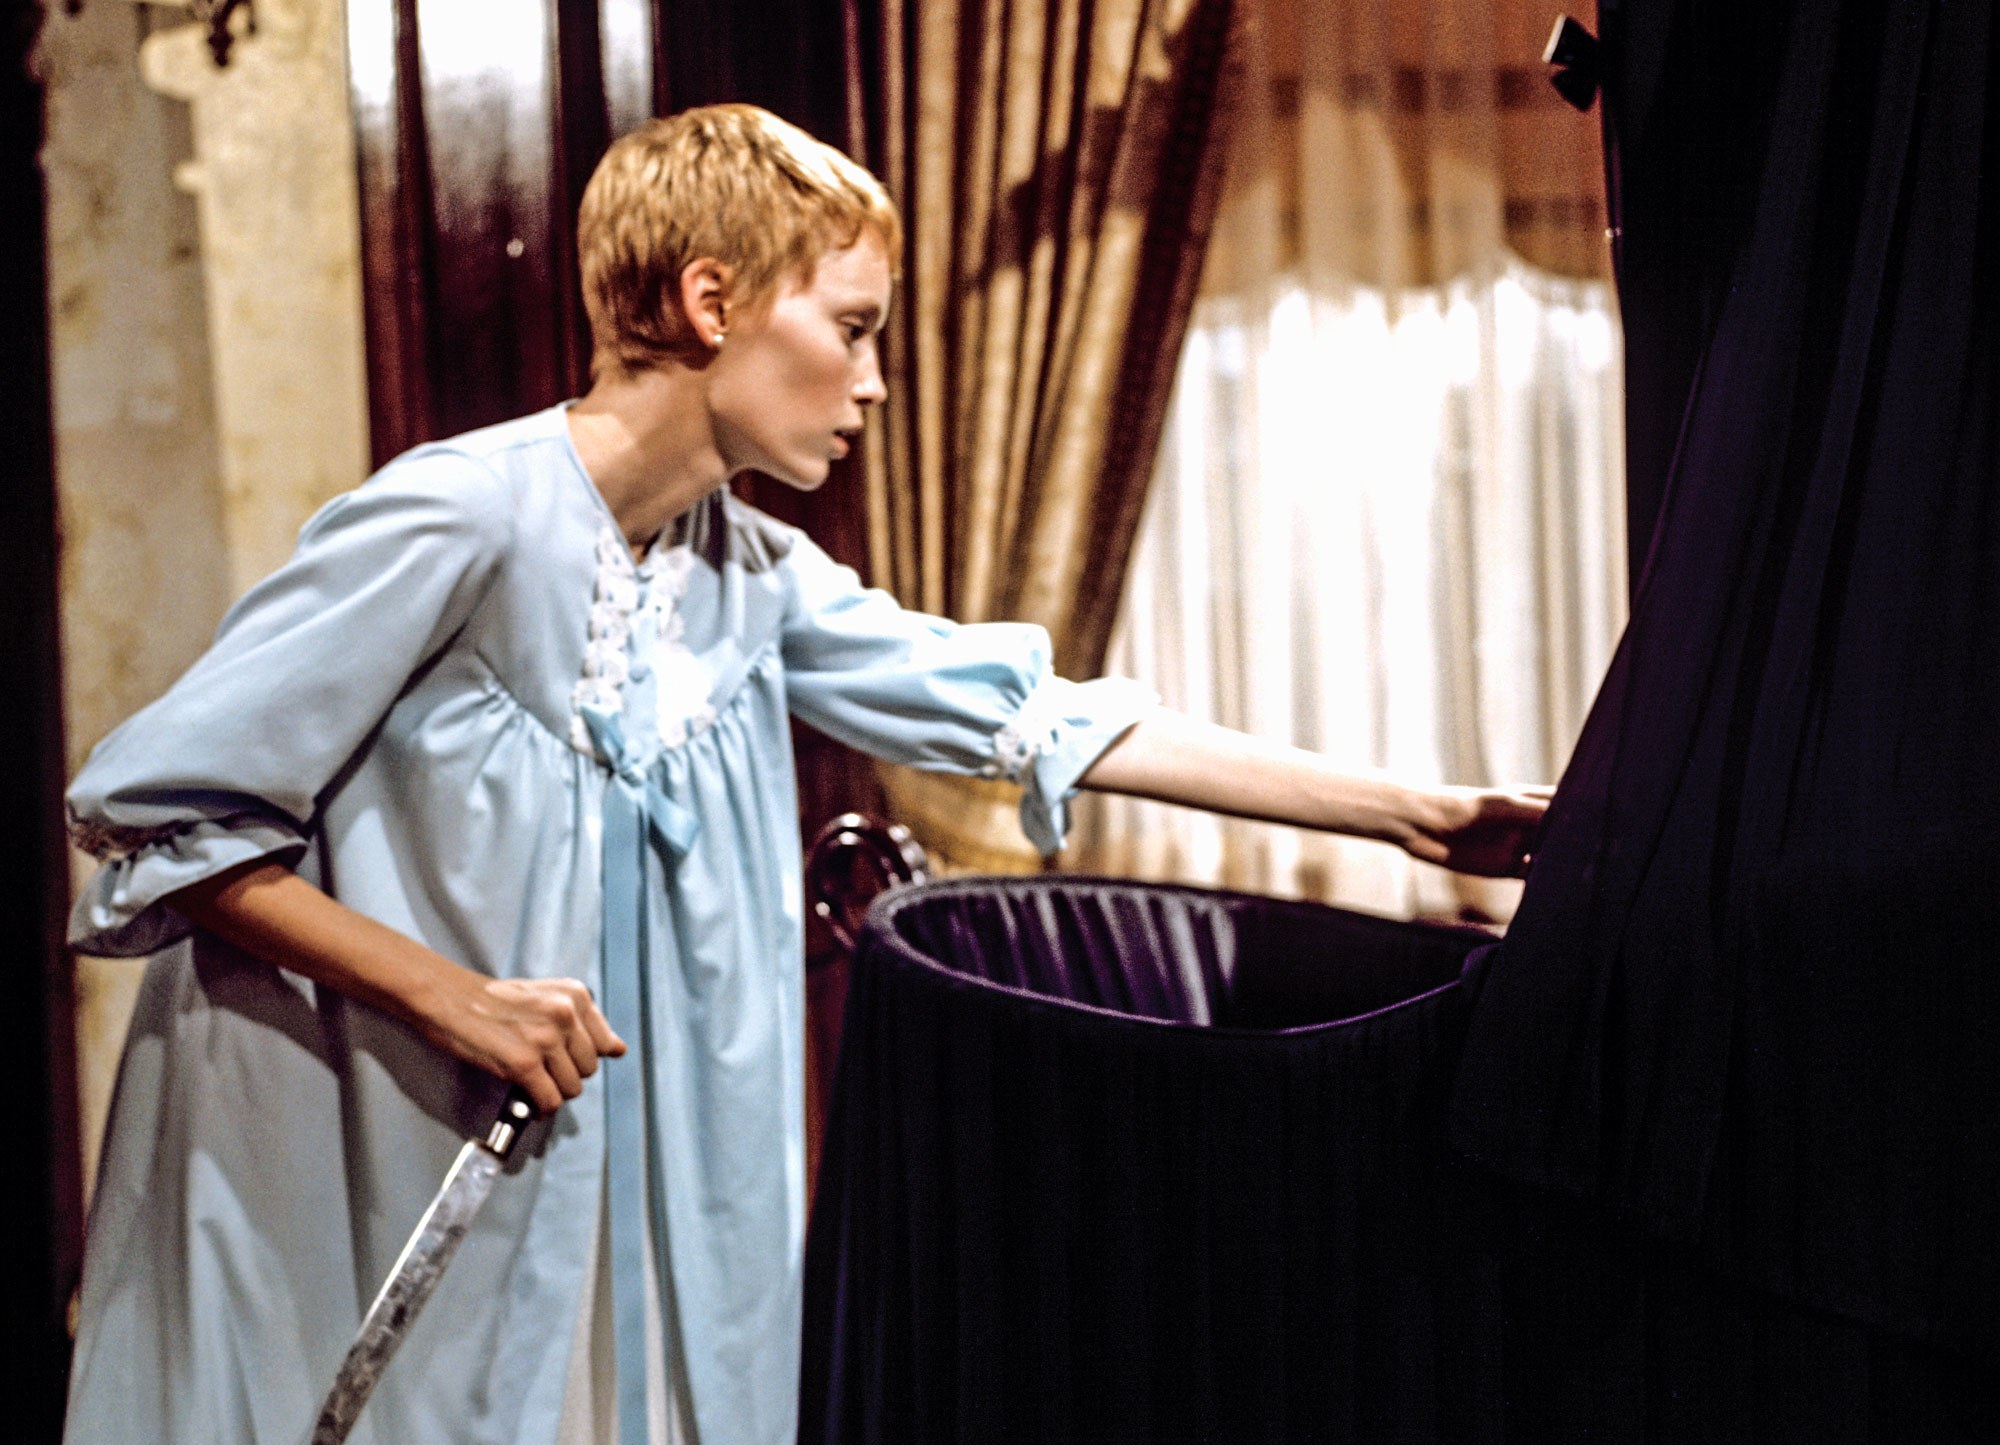 Still from Rosemary's Baby (Polasnki, 1968).